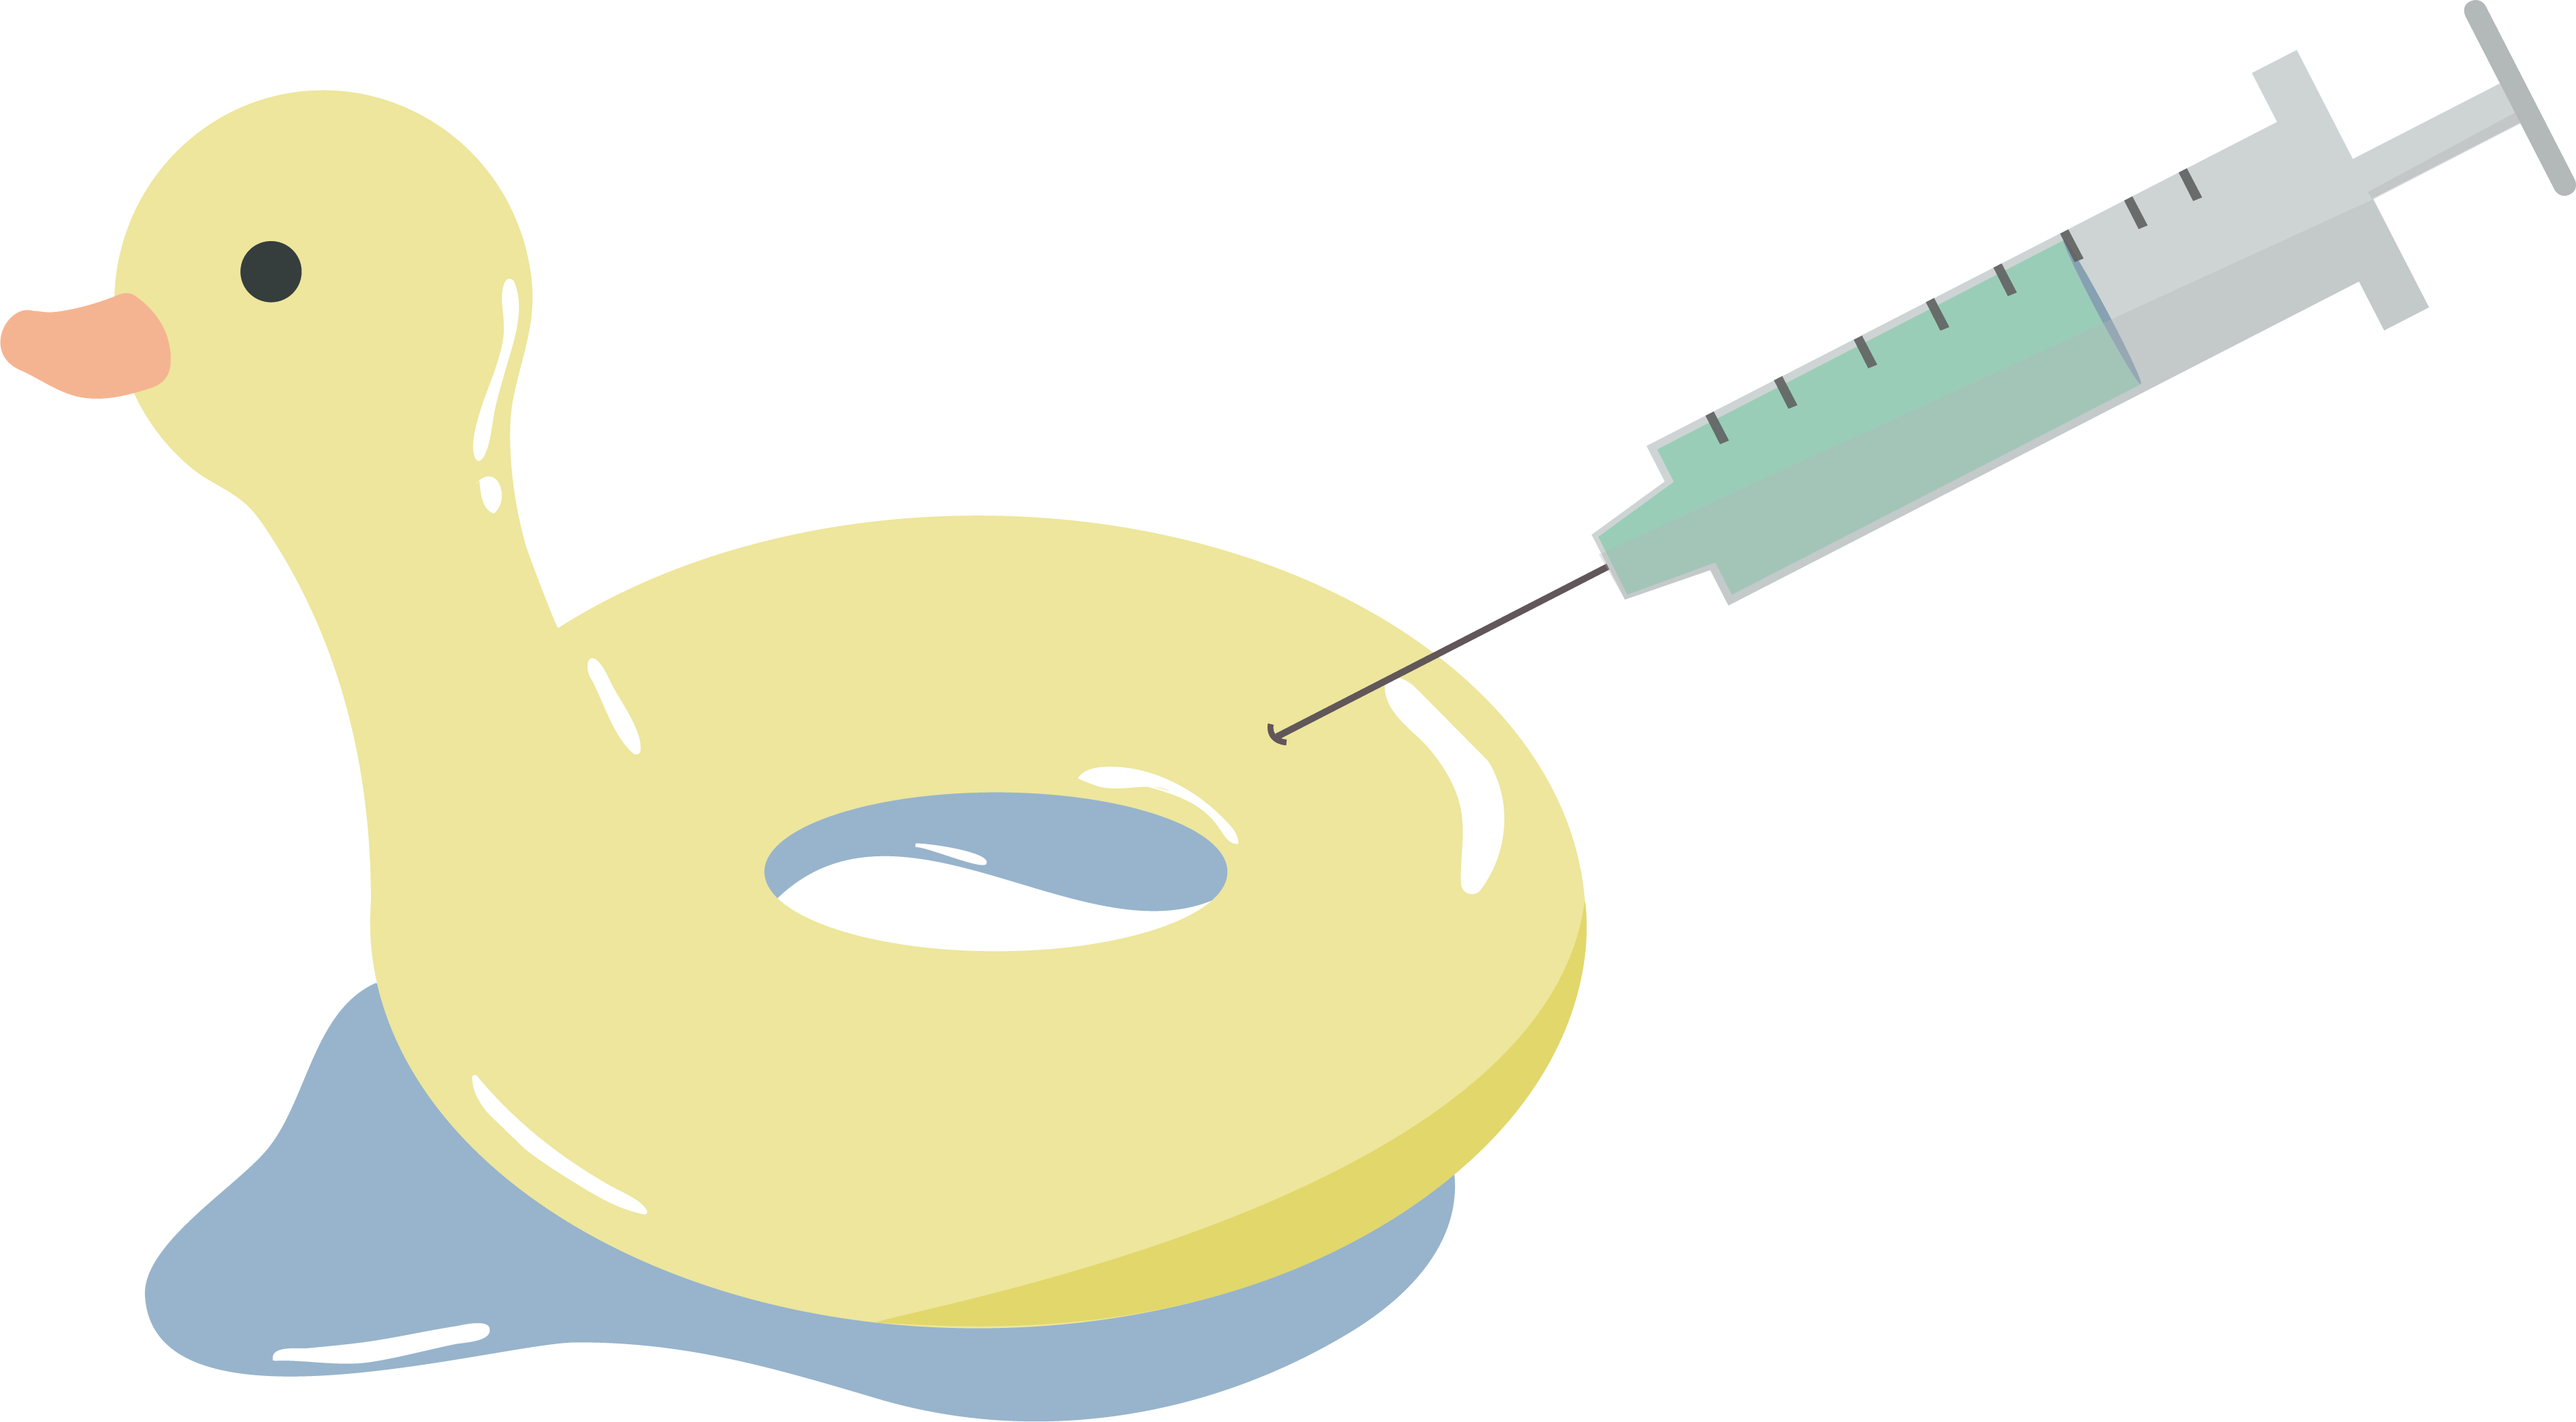 An illustration of an inflatable duck being filled by a vaccine syringe